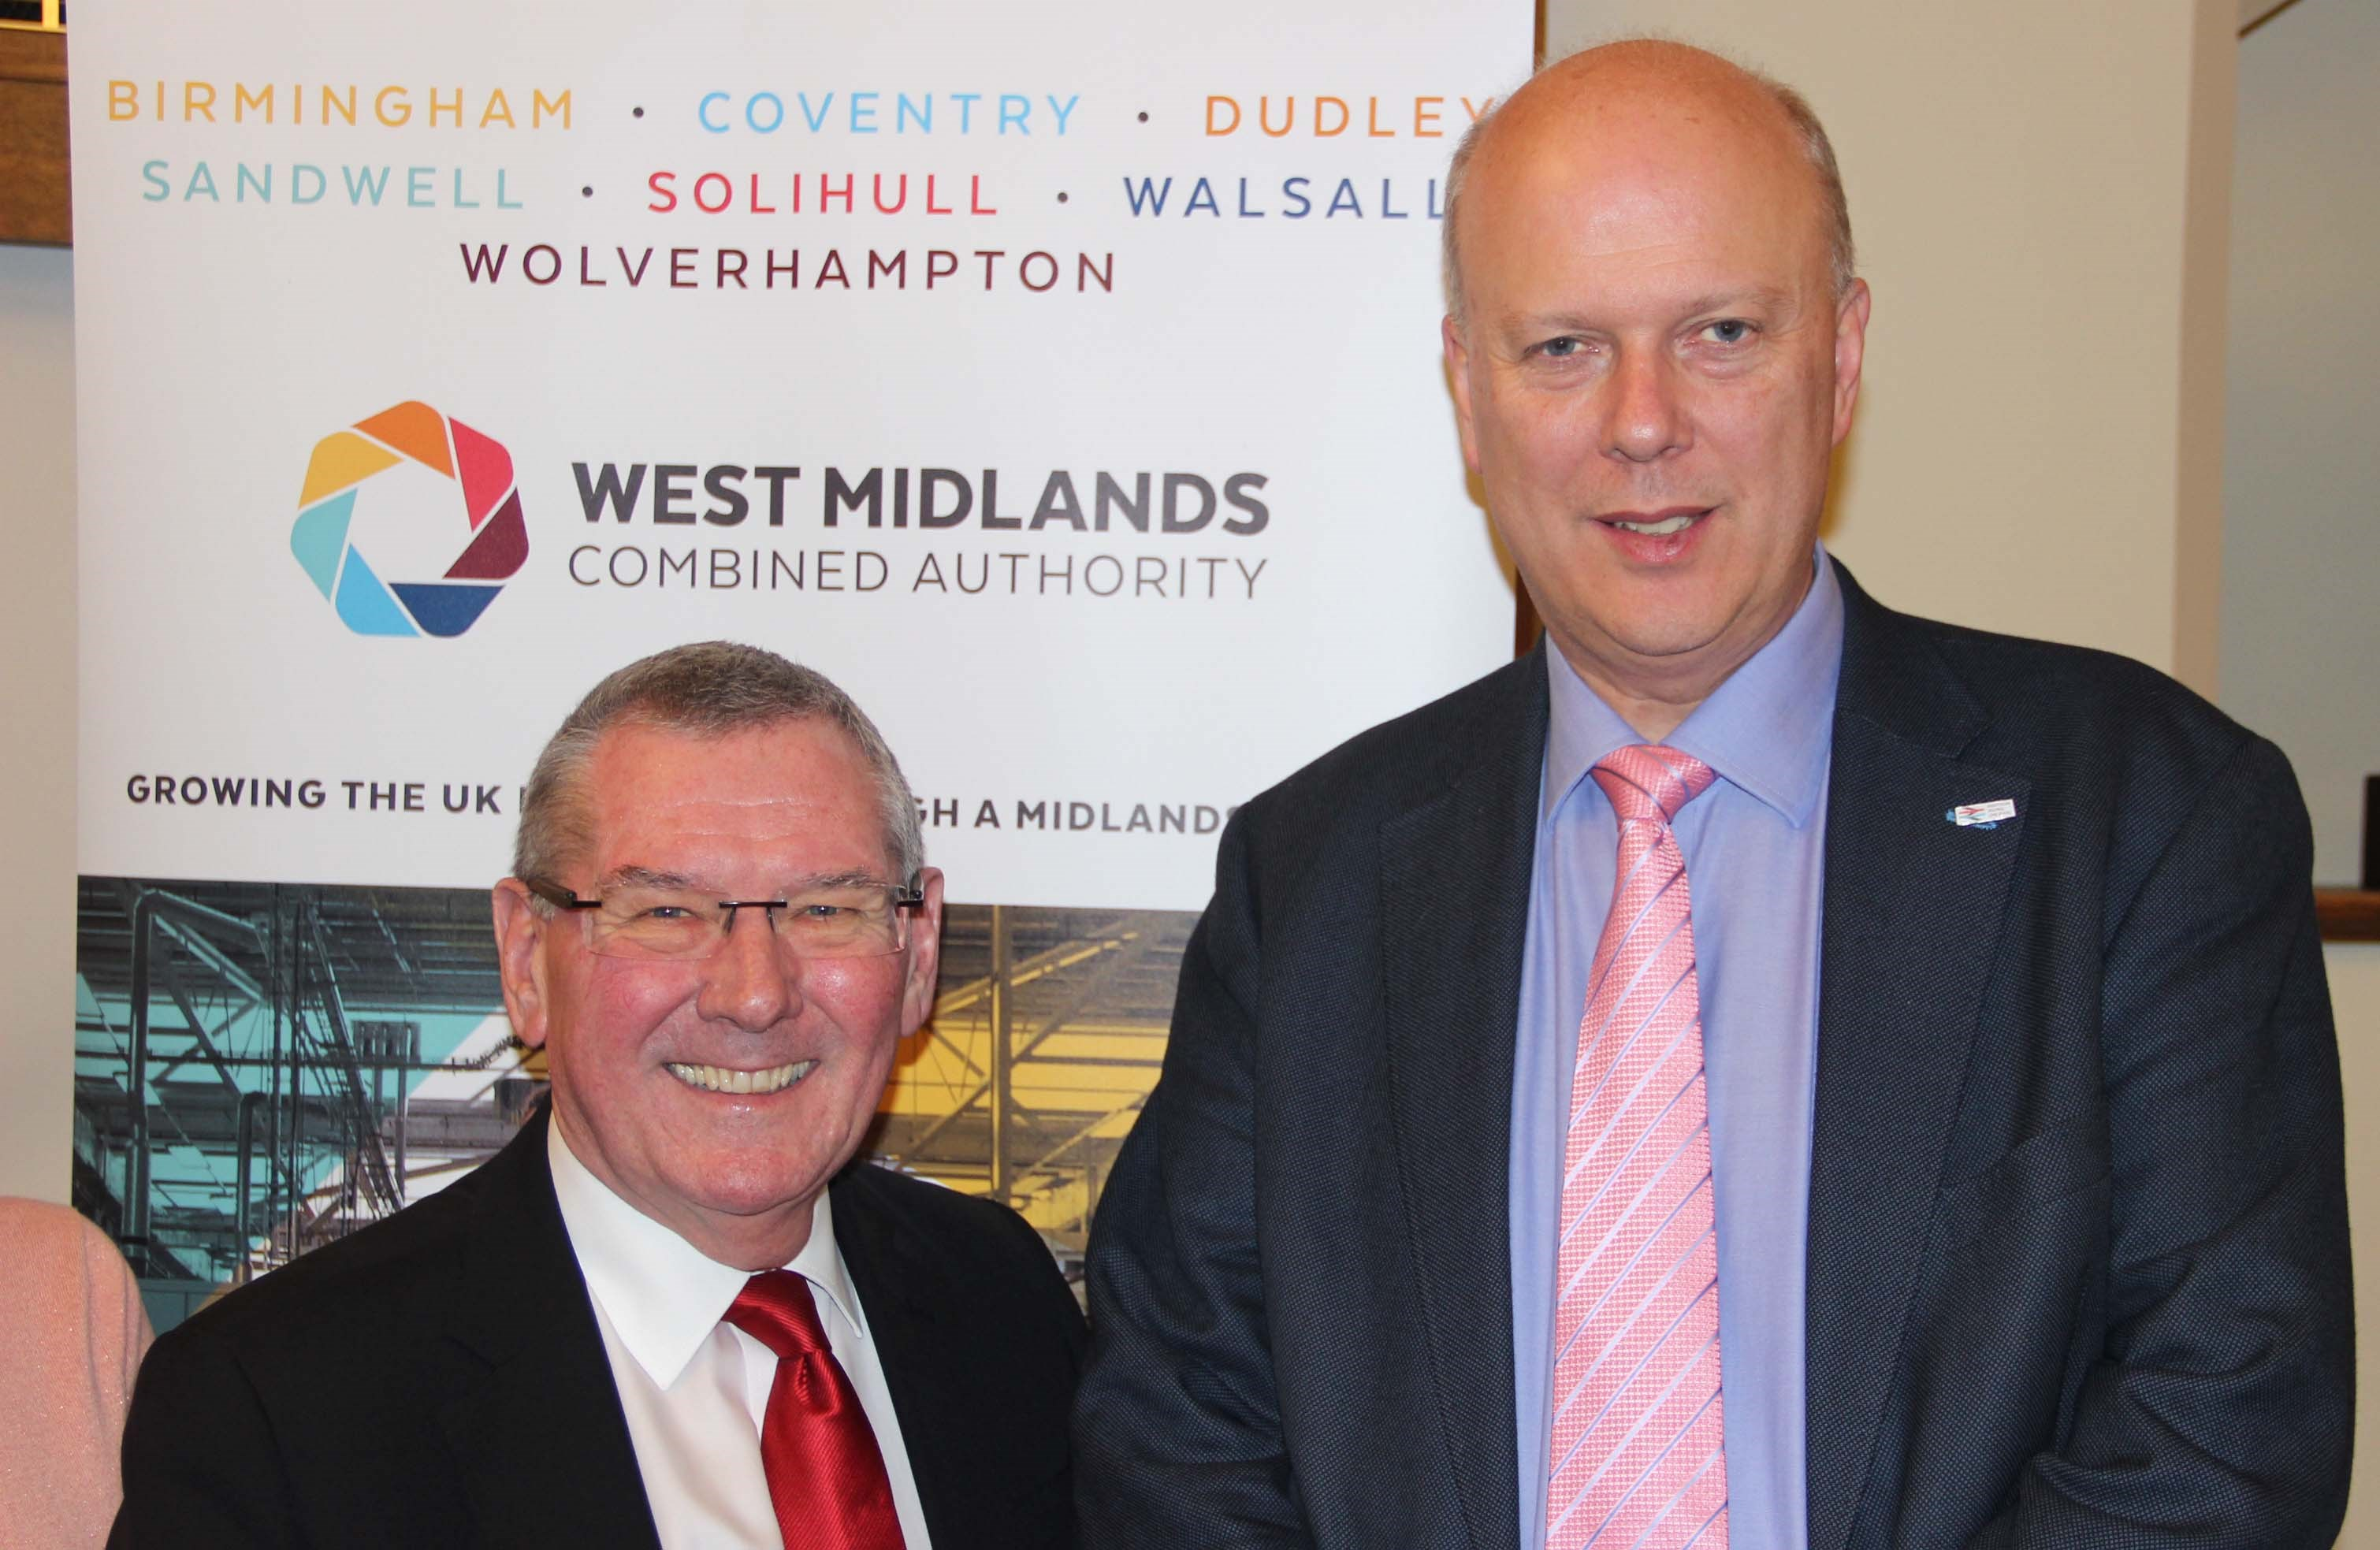 HS2 a catalyst for West Midland prosperity, Parliamentary reception is told